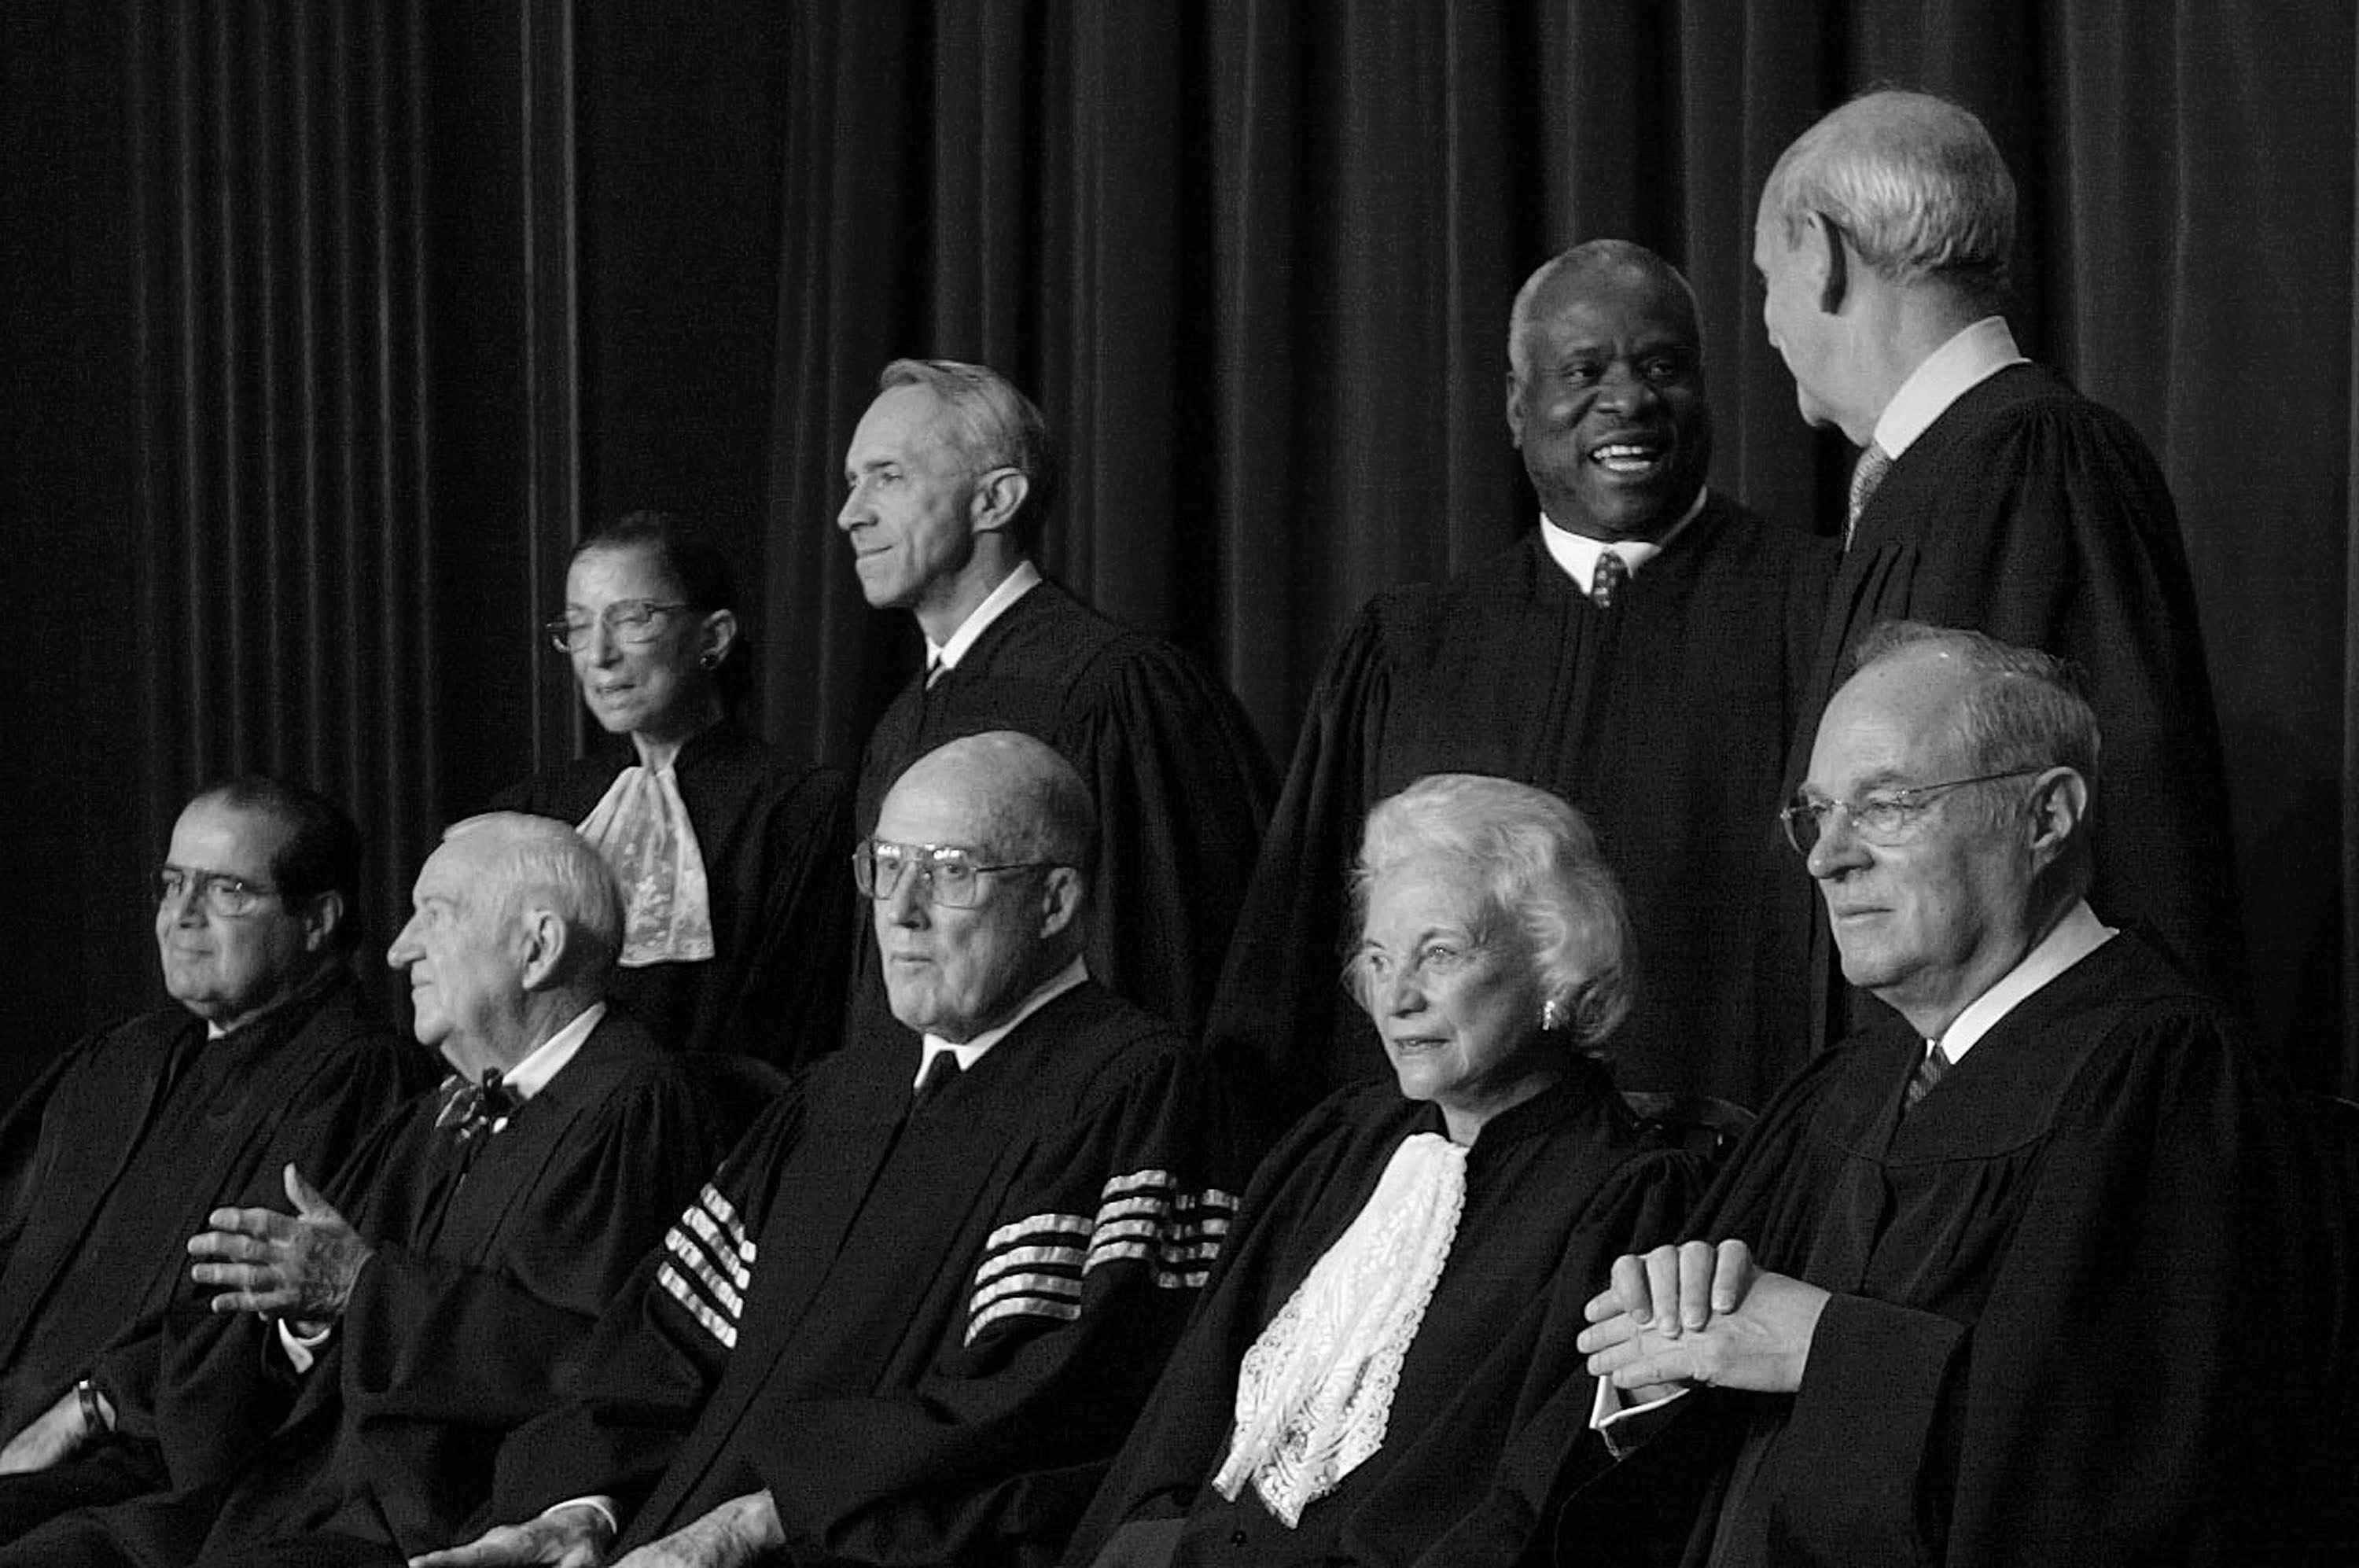 (L-R, Seated) Associate Justice Antonin Scalia, Associate Justice John Paul Stevens, Chief Justice William H. Rehnquist, Associate Justice Sandra Day O'Connor, Associate Justice Anthony M. Kennedy, (L-R, Standing) Associate Justice Ruth Bader Ginsburg, Associate Justice David H. Souter, Associate Justice Clarence Thomas and Stephen G. Breyer pose for pictures at the US Supreme Court in 2003 (Photo by Mark Wilson/Getty Images)